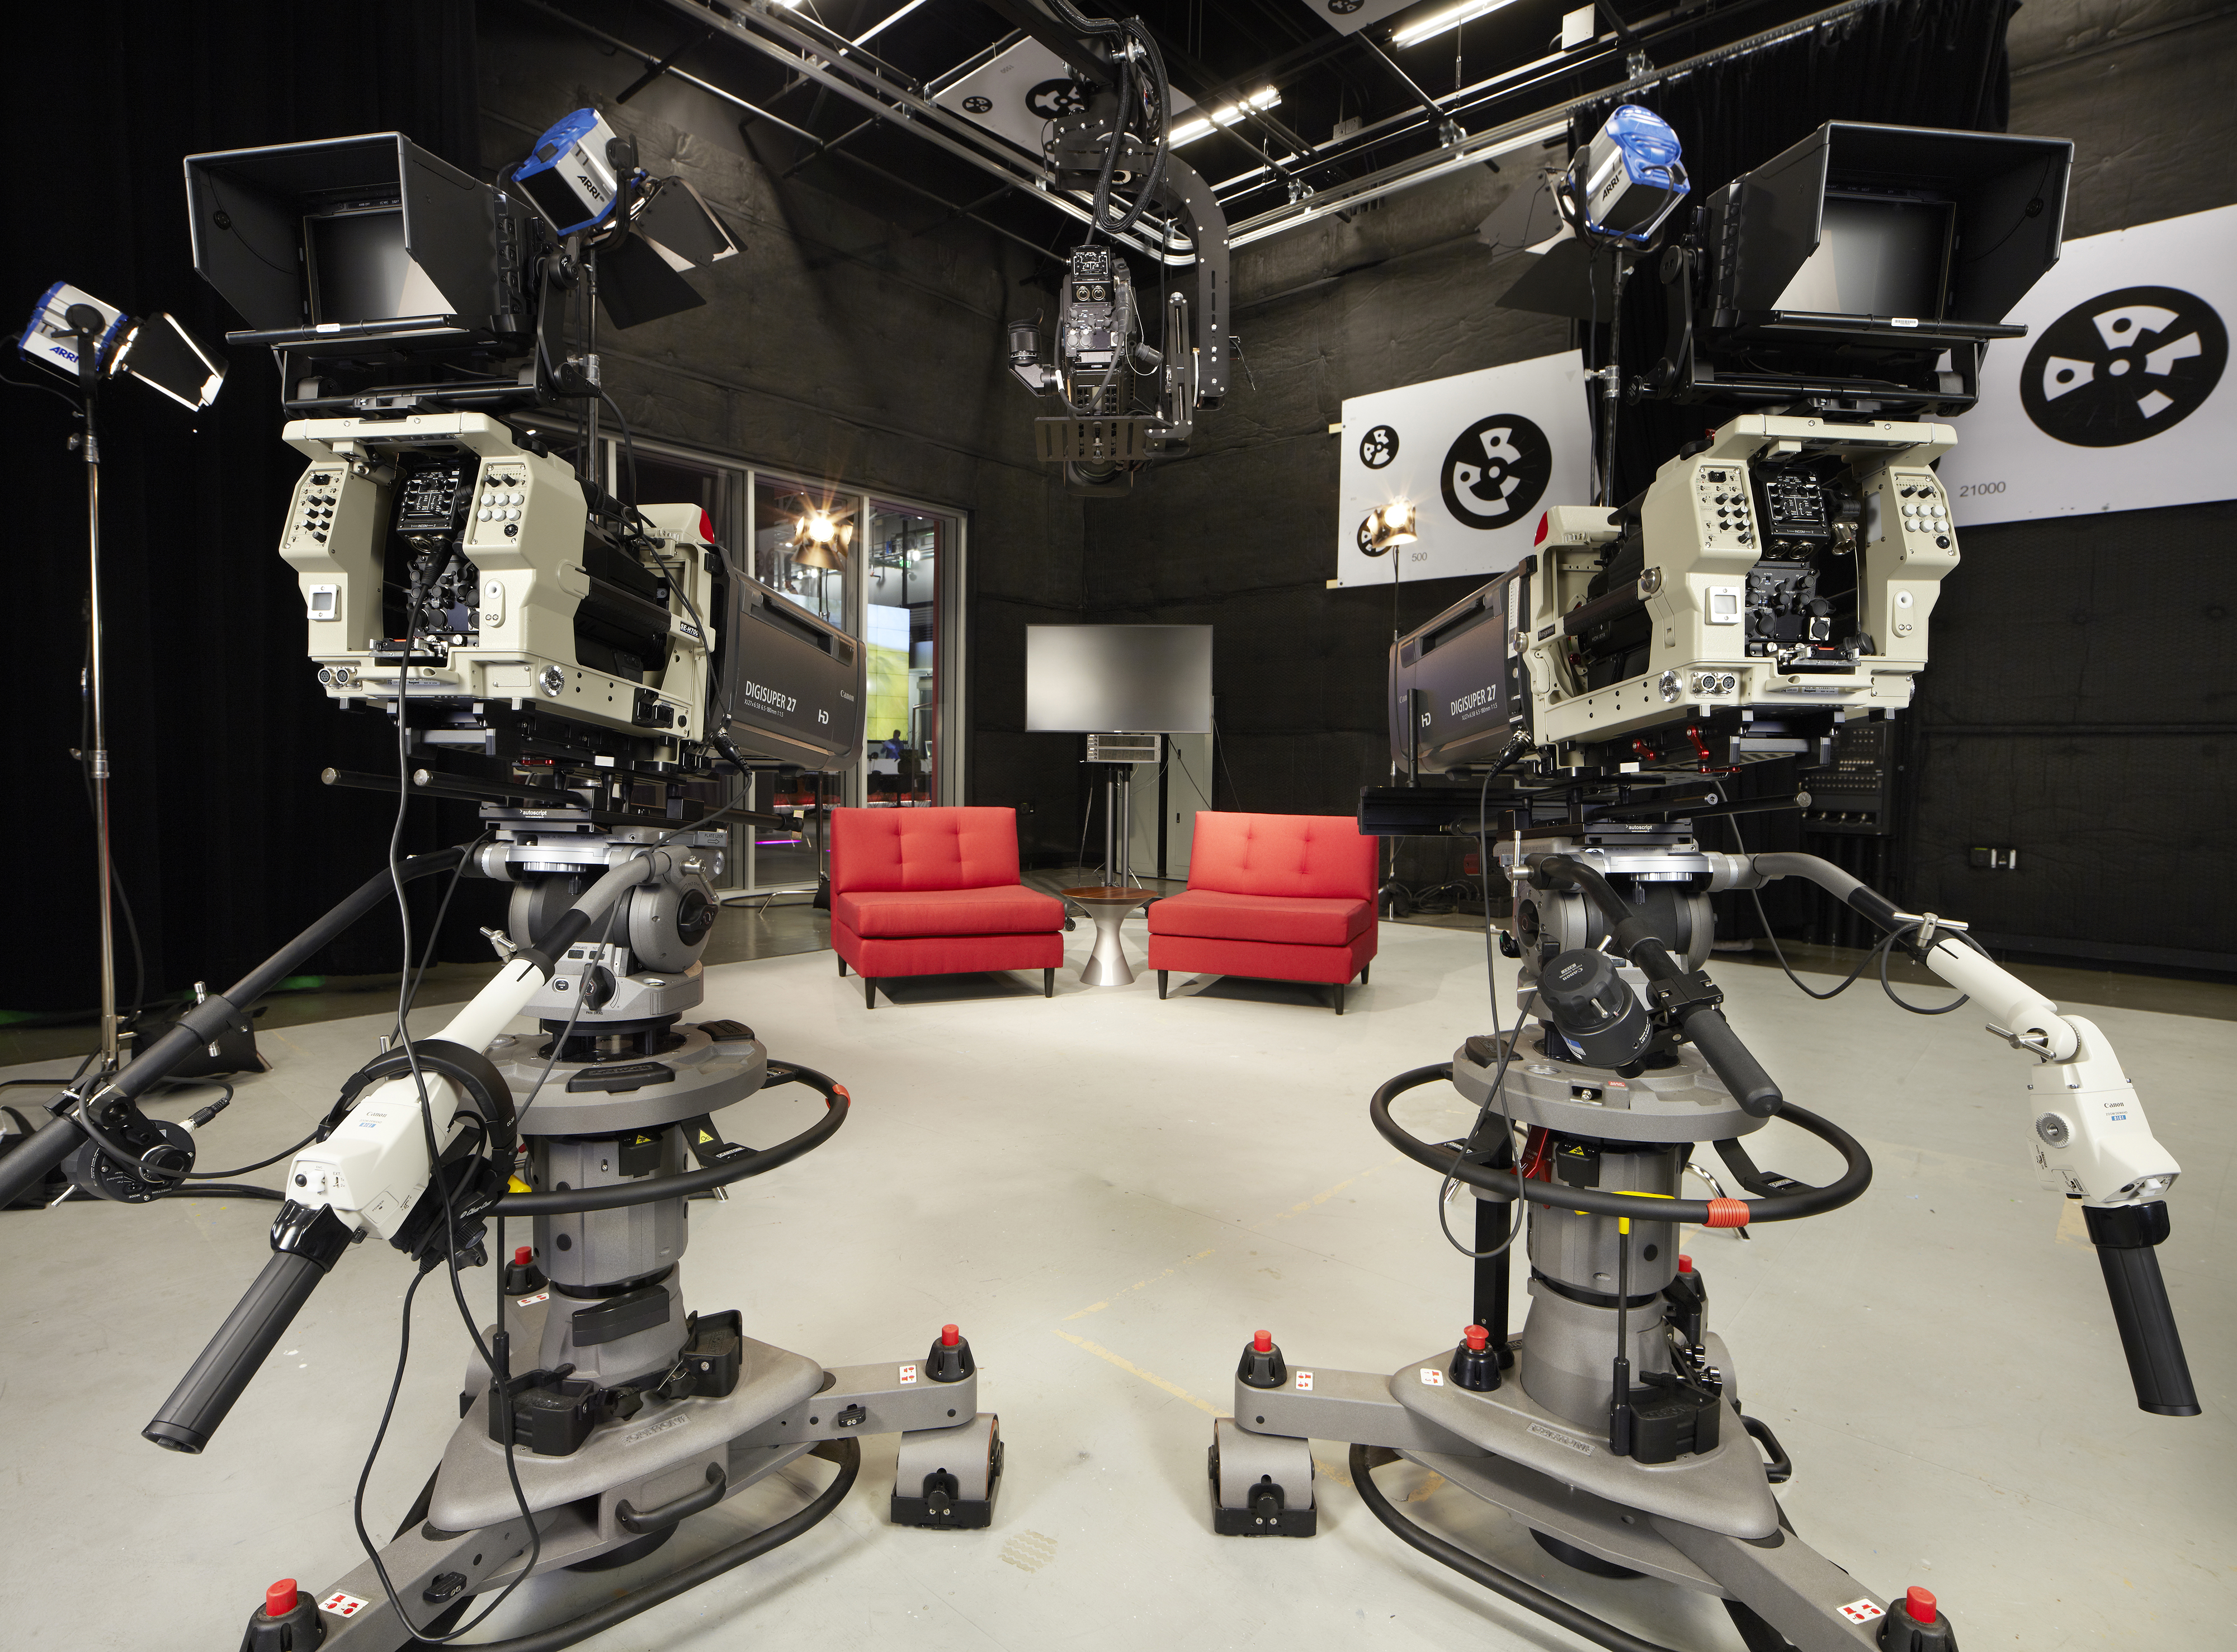 Stage 2 at YouTube Space LA is 2,500 square feet -- large enough to park almost 20 Chevy Suburban SUVs inside.